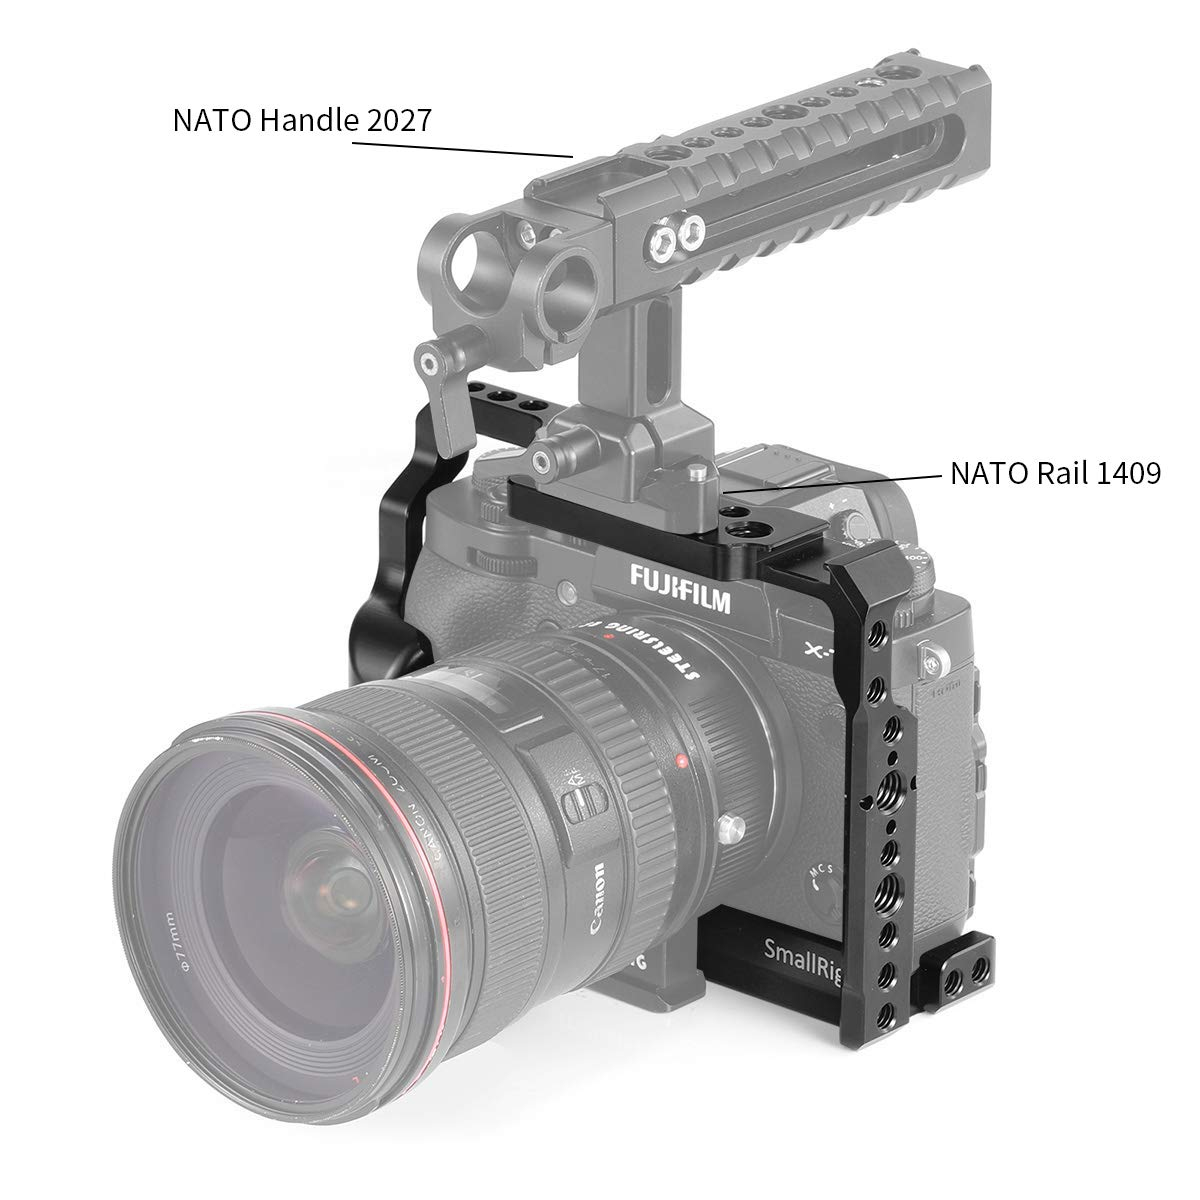 SMALLRIG Camera Cage for Fujifilm X-T3, Aluminum Alloy Cage with Cold Shoe, NATO Rail, Threaded Holes for Arri 3/8'',1/4''-20,3/8''-16 (2228) by SMALLRIG (Image #6)